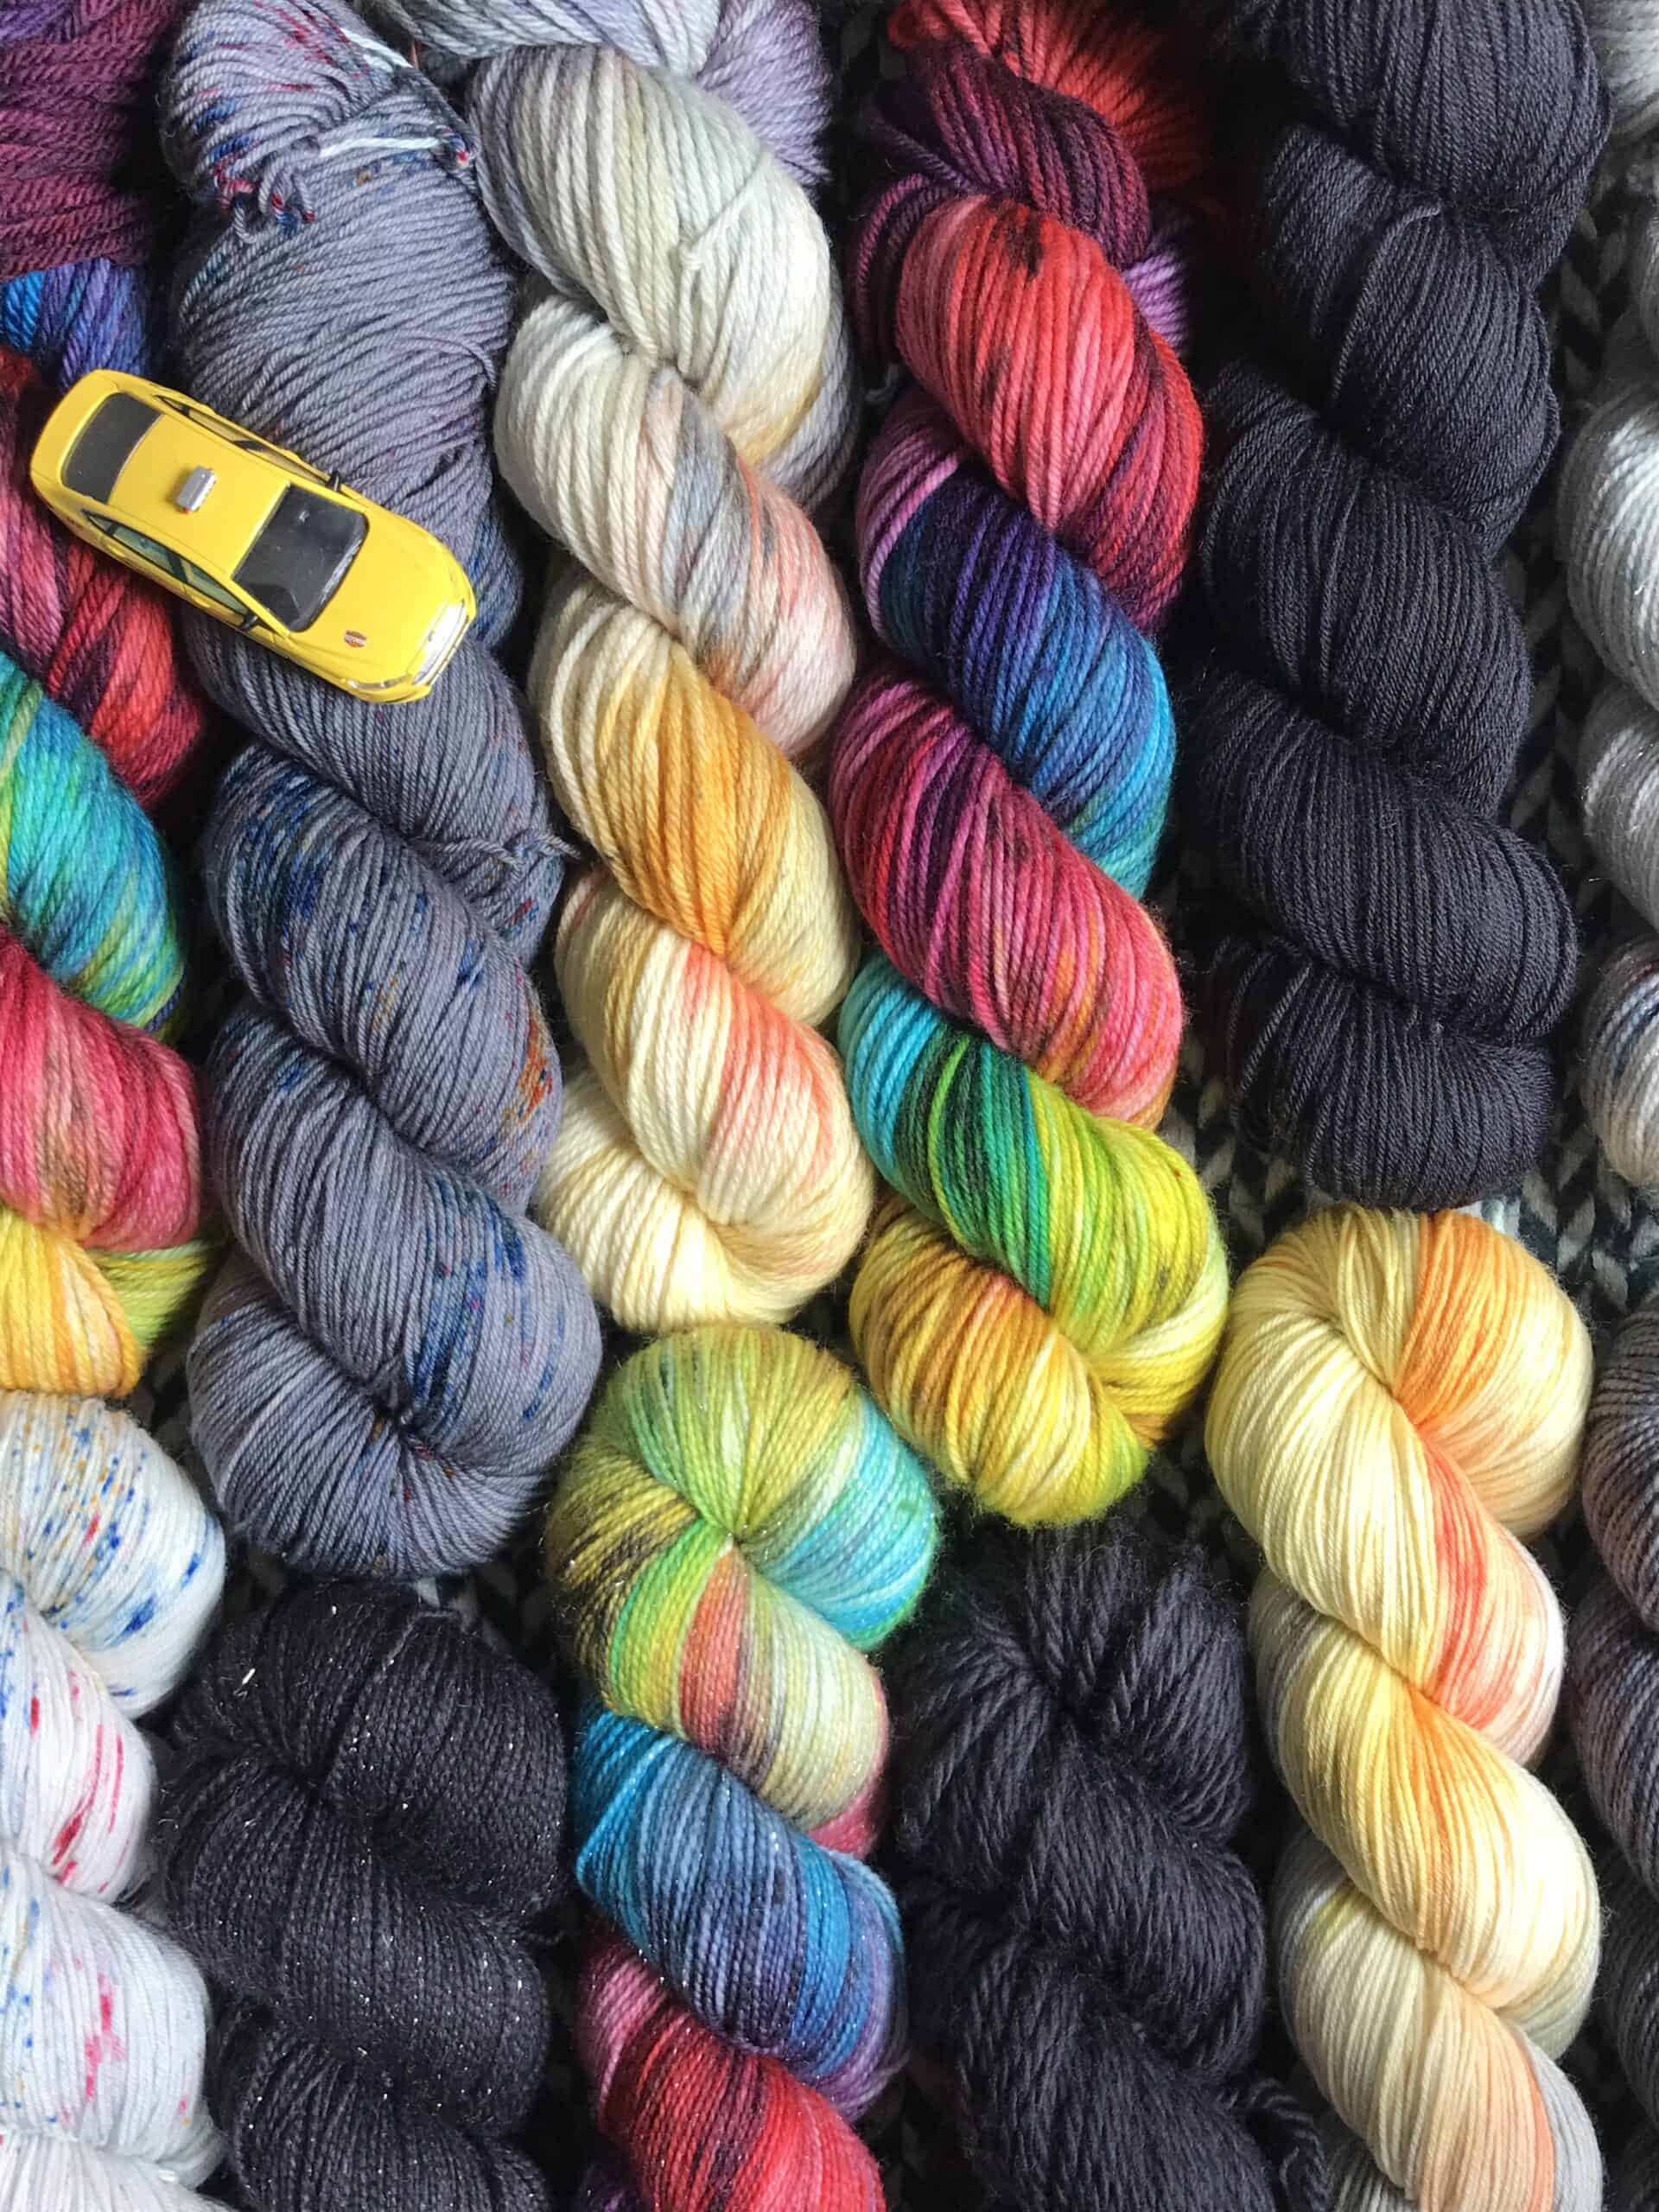 Skeins of colorful yarn and a small yellow taxi.